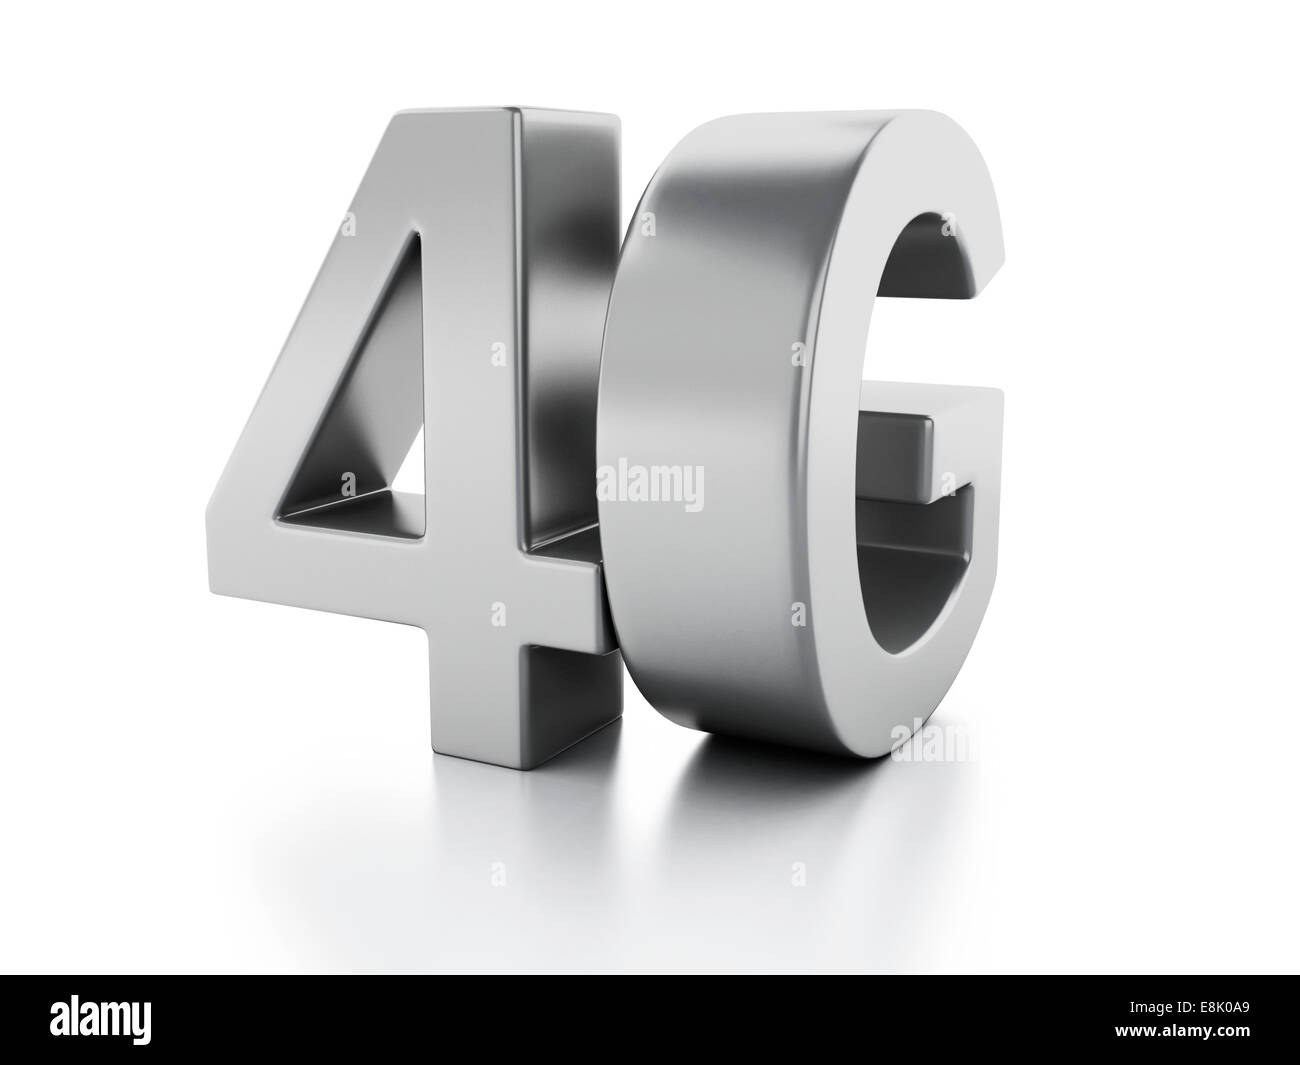 4g Telecommunication Connection Networking Mobility Stock Photos ...